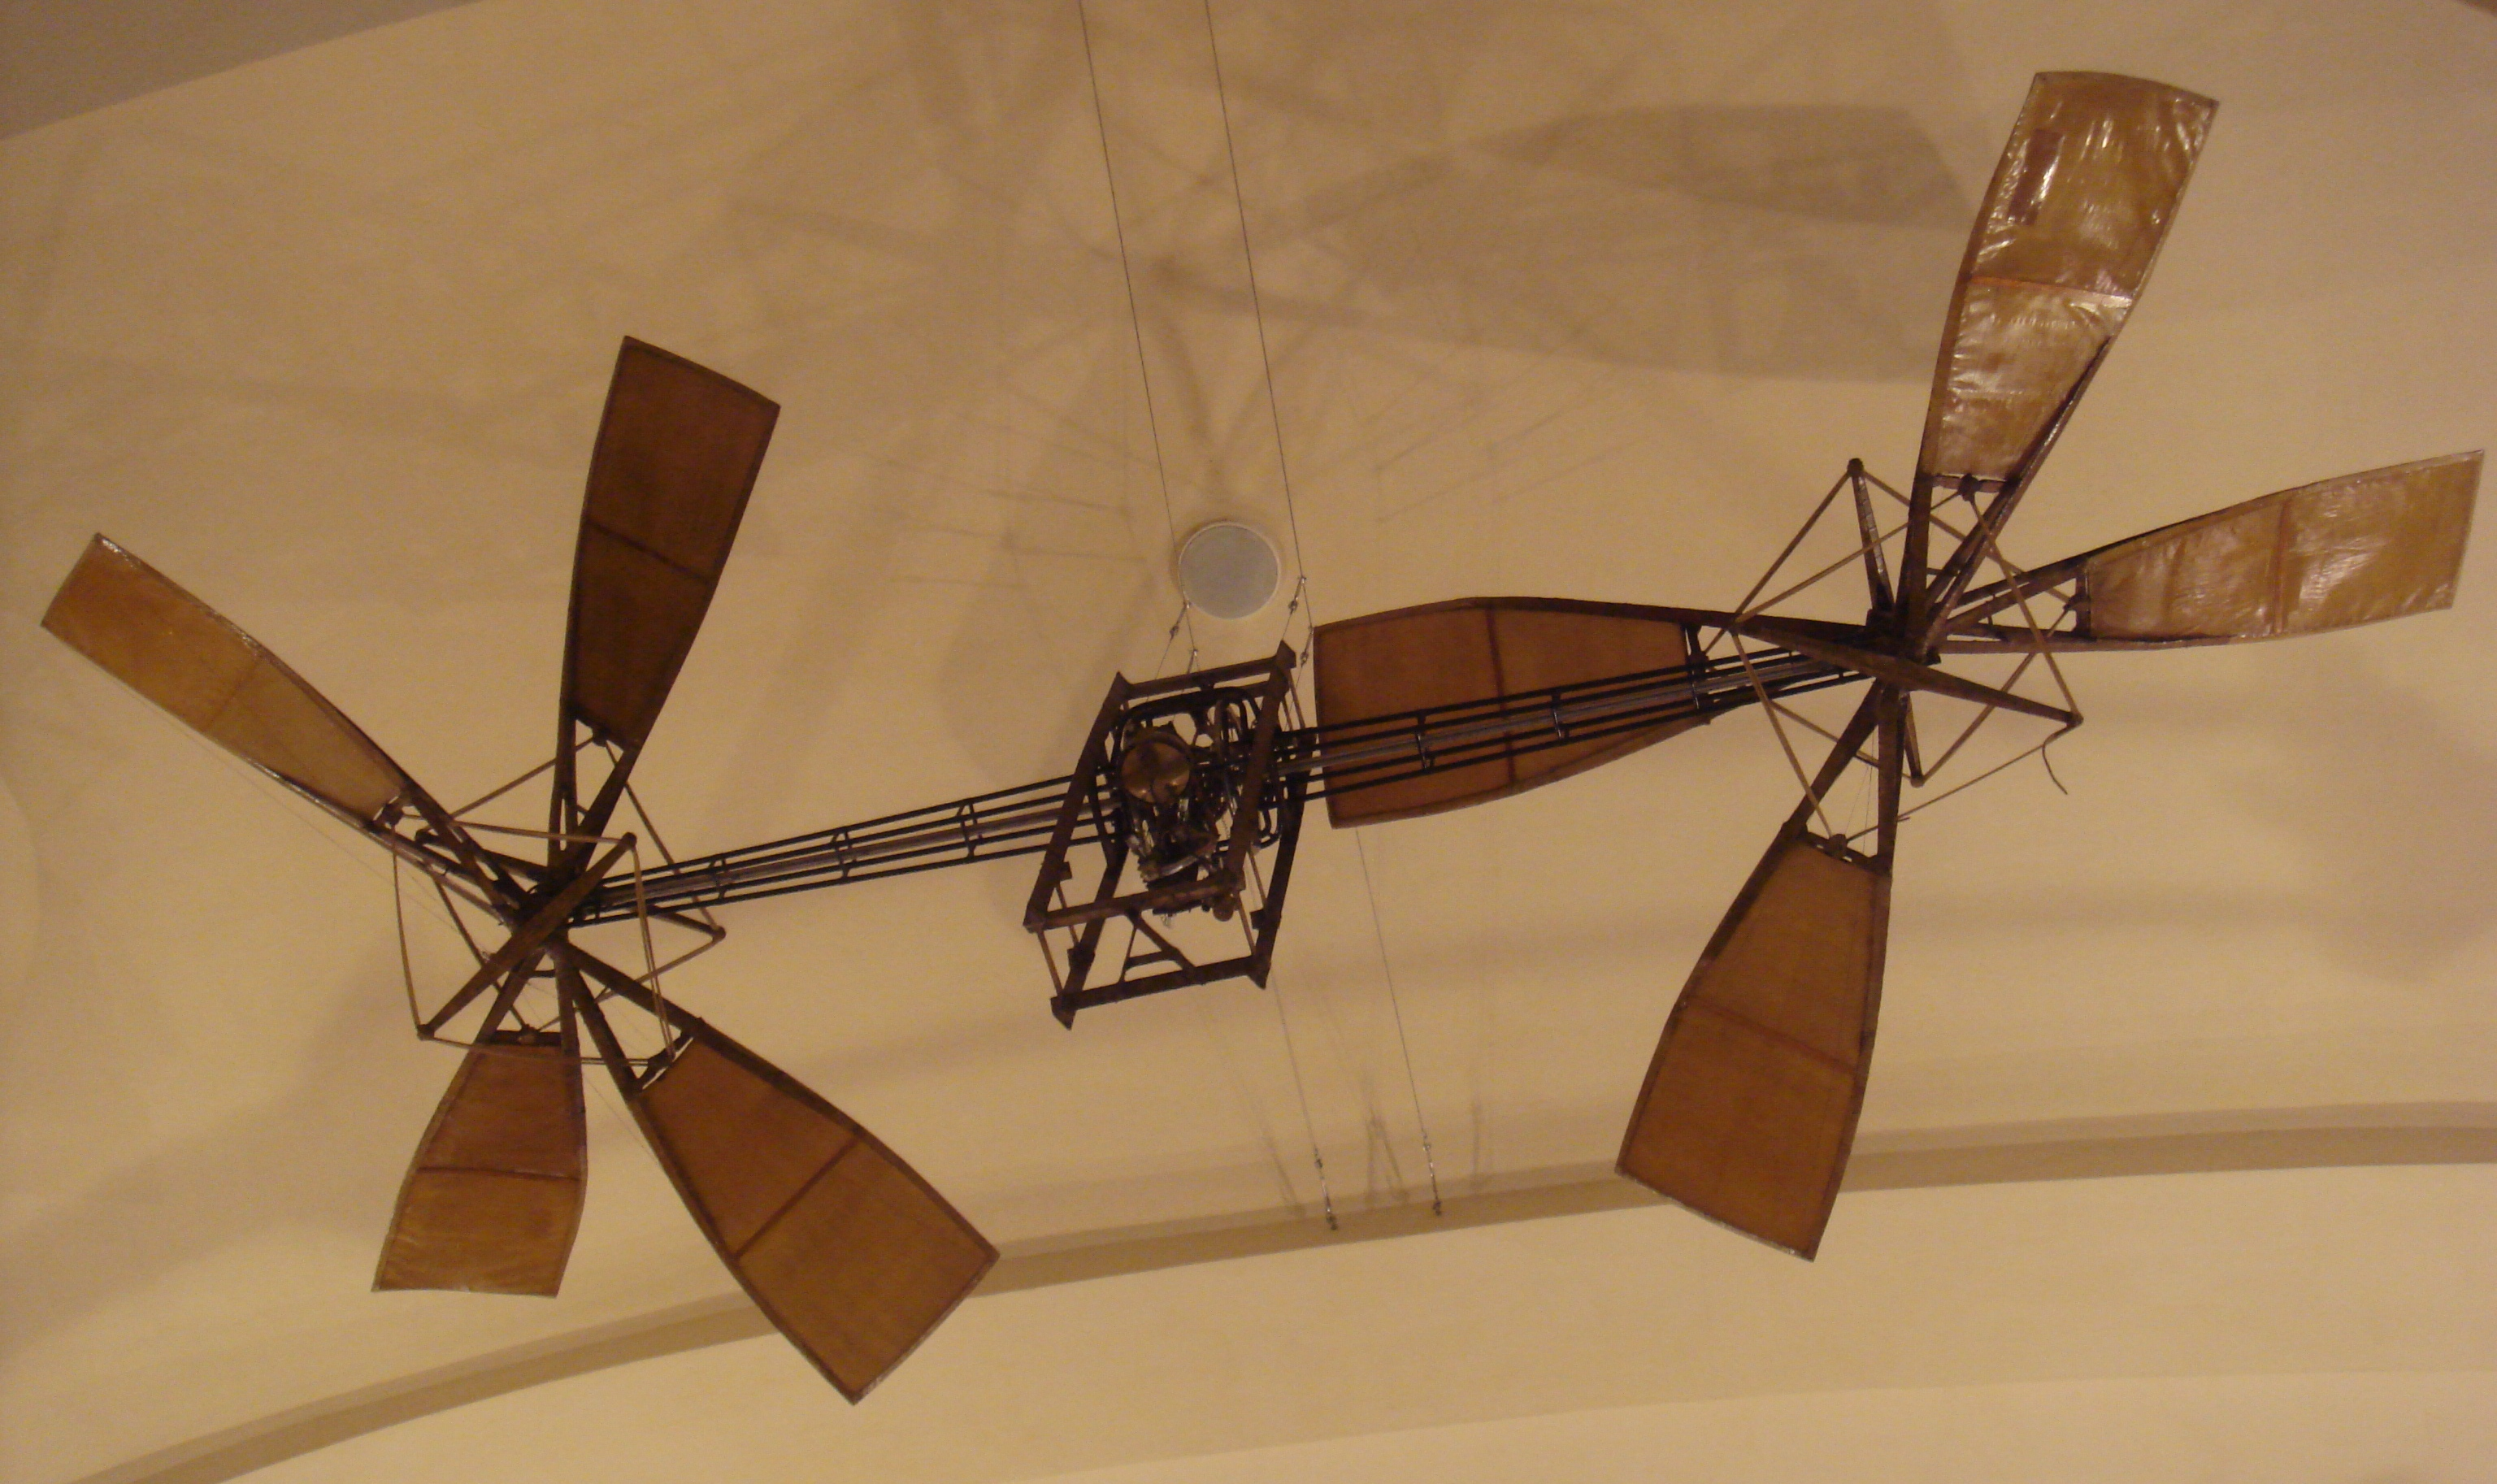 File Dufaux Helicopter 1905 Wikimedia mons